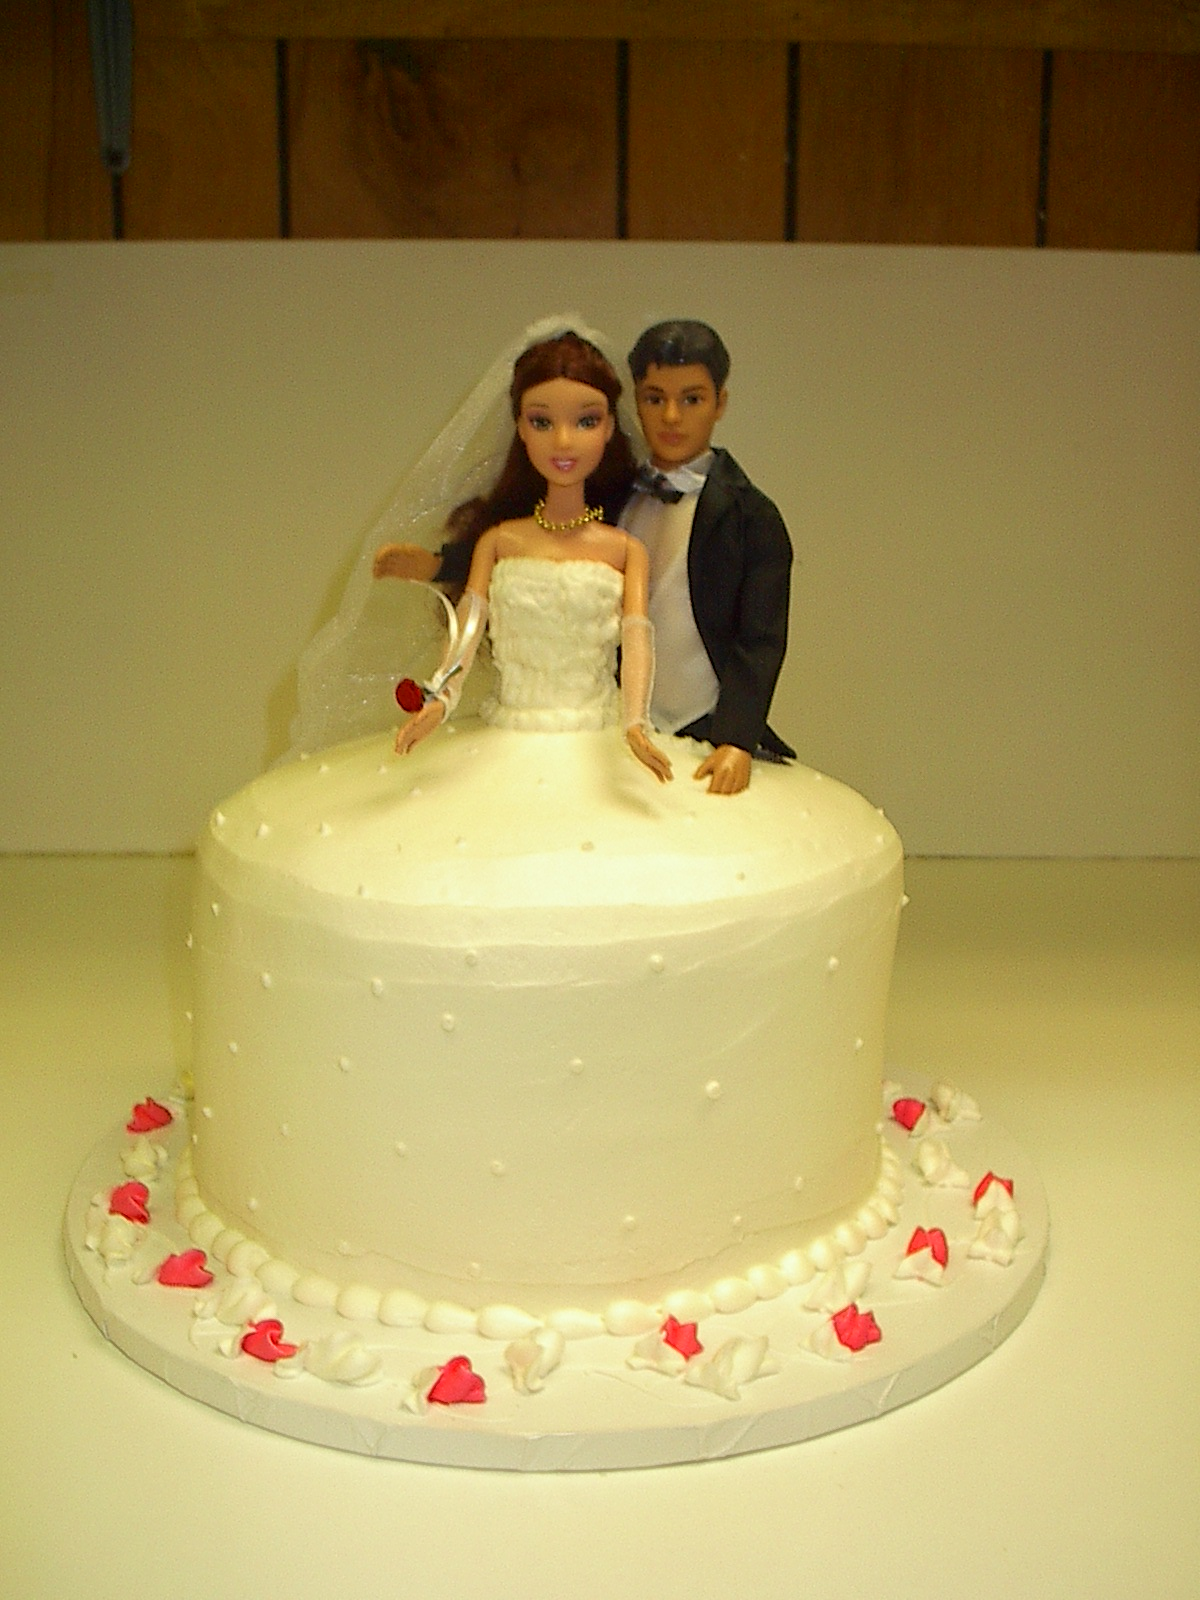 Download Barbie Cake Images : Barbie and Ken Wedding Cake 10x Pro